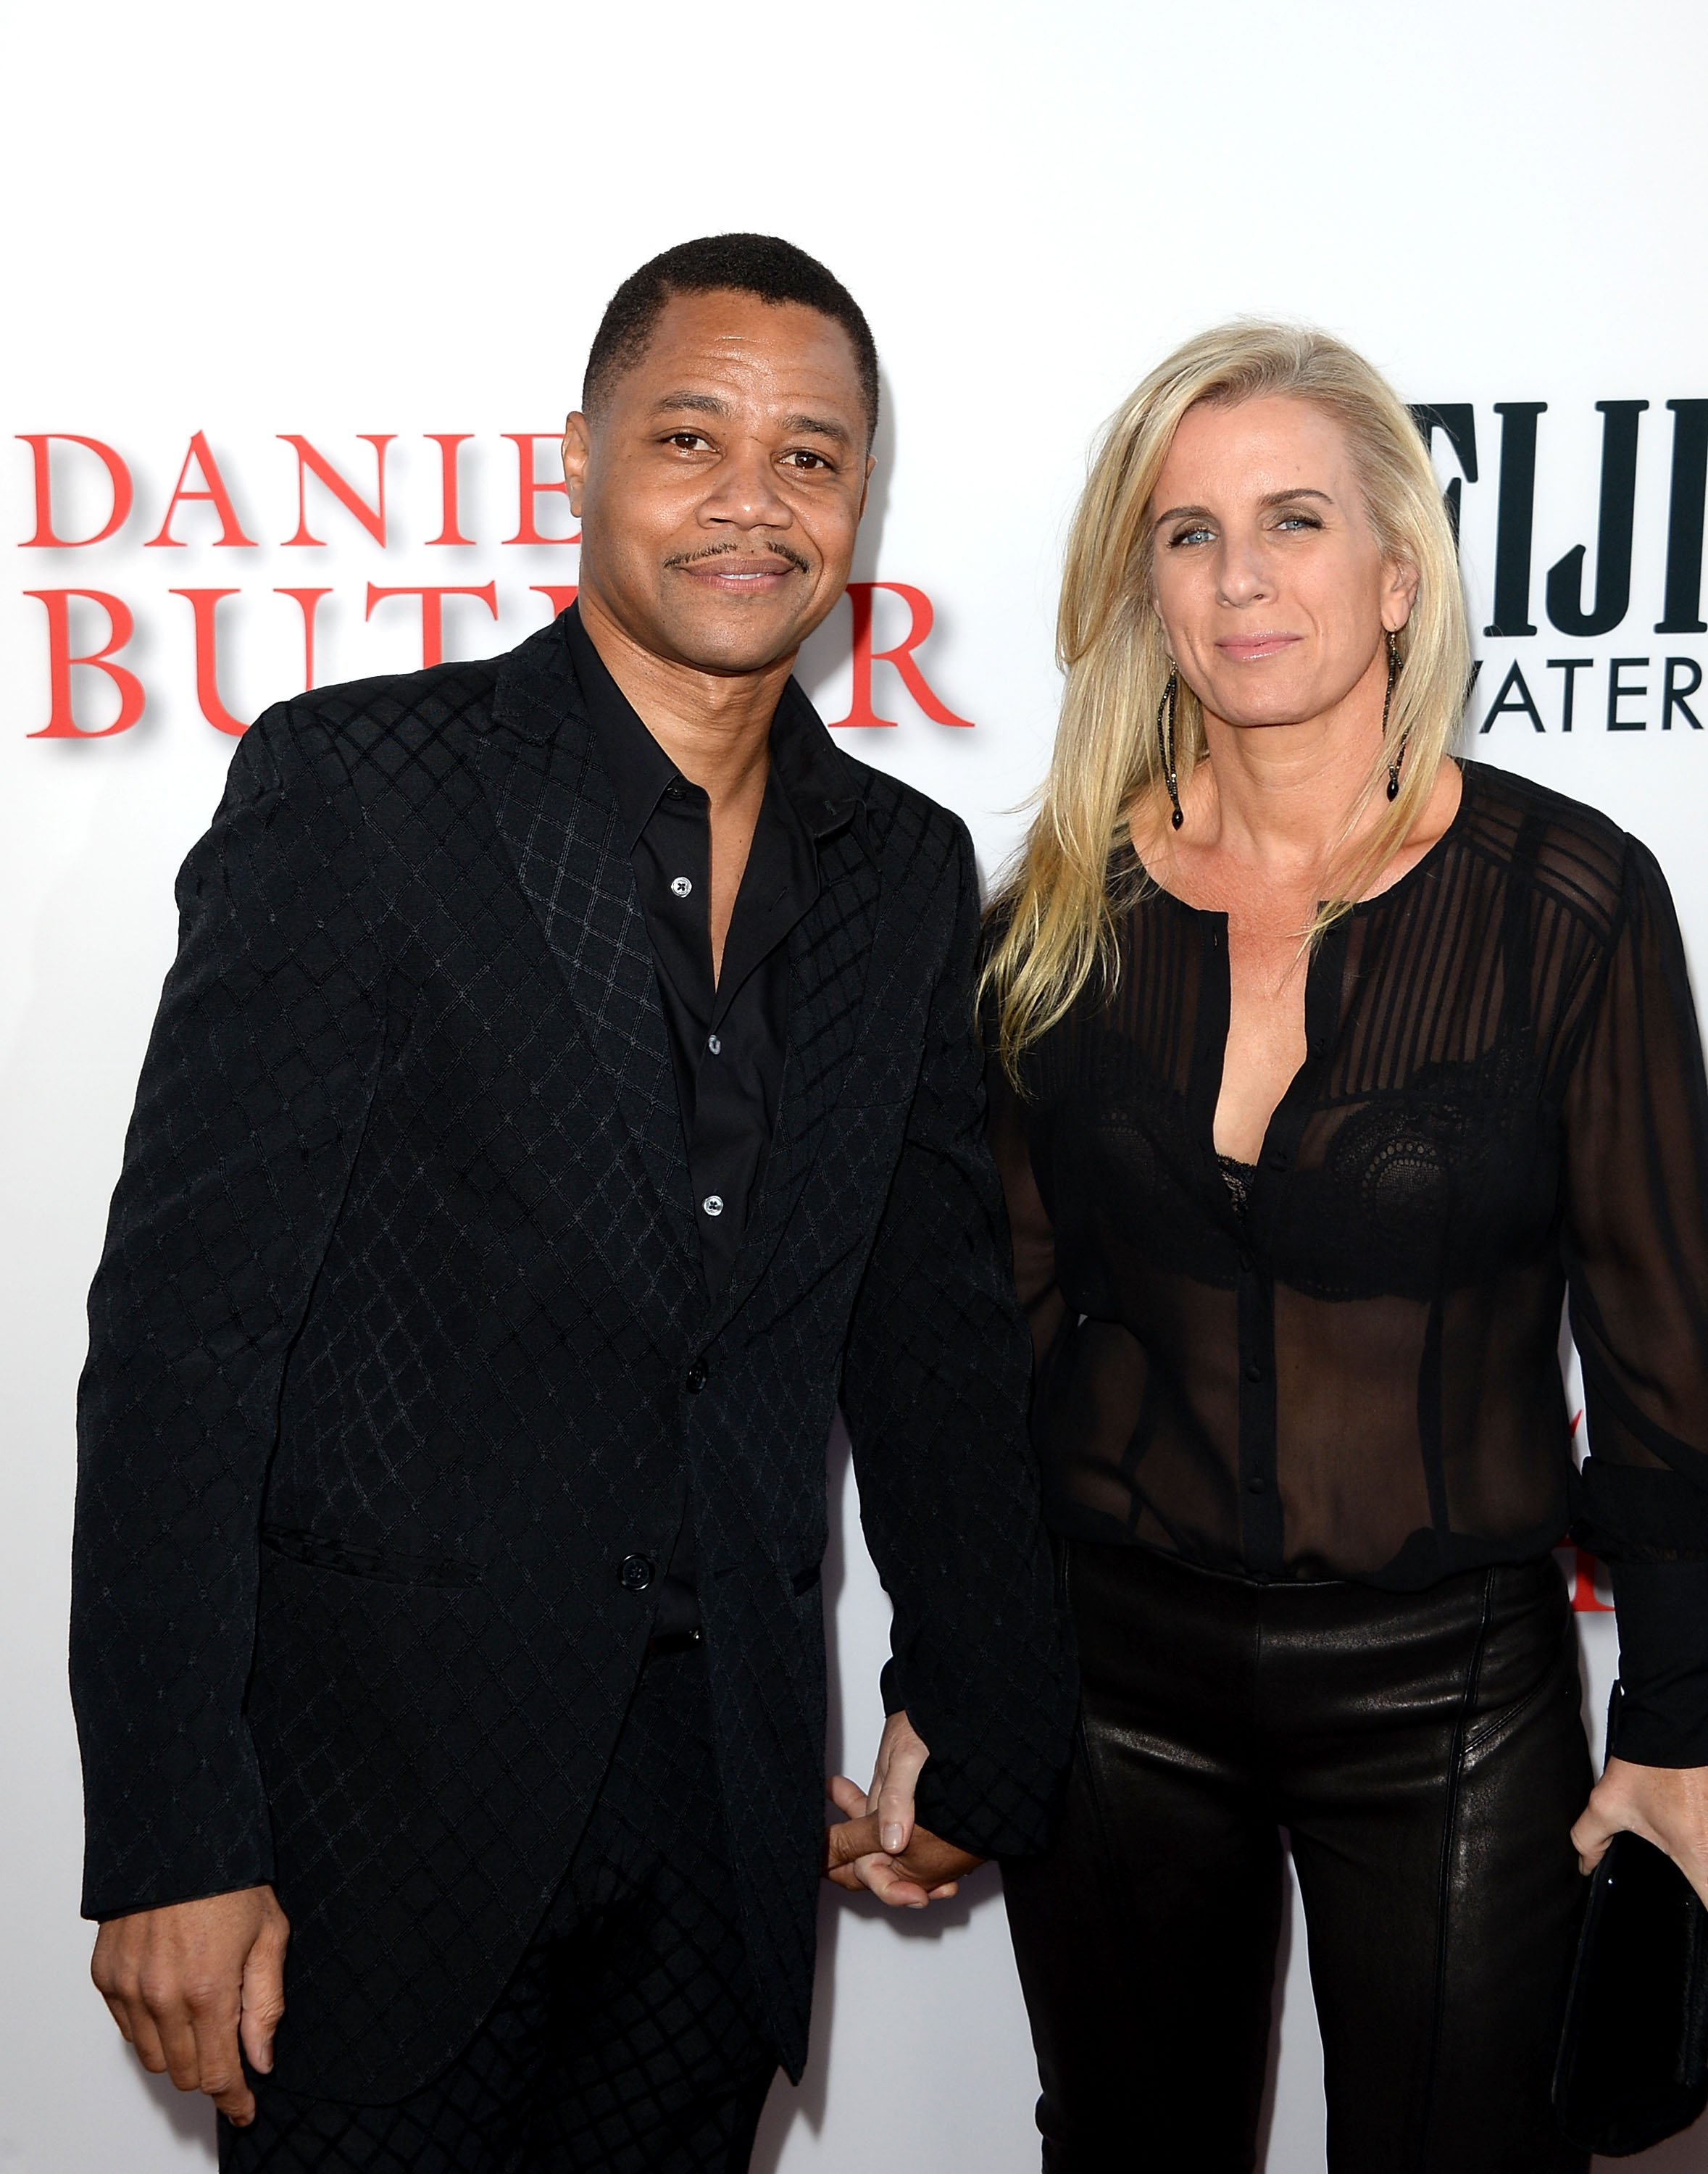 """Cuba Gooding Jr. and Sara Kapfer at the premiere of """"Lee Daniels' The Butler"""" in Los Angeles, California on Aug. 12, 2013."""